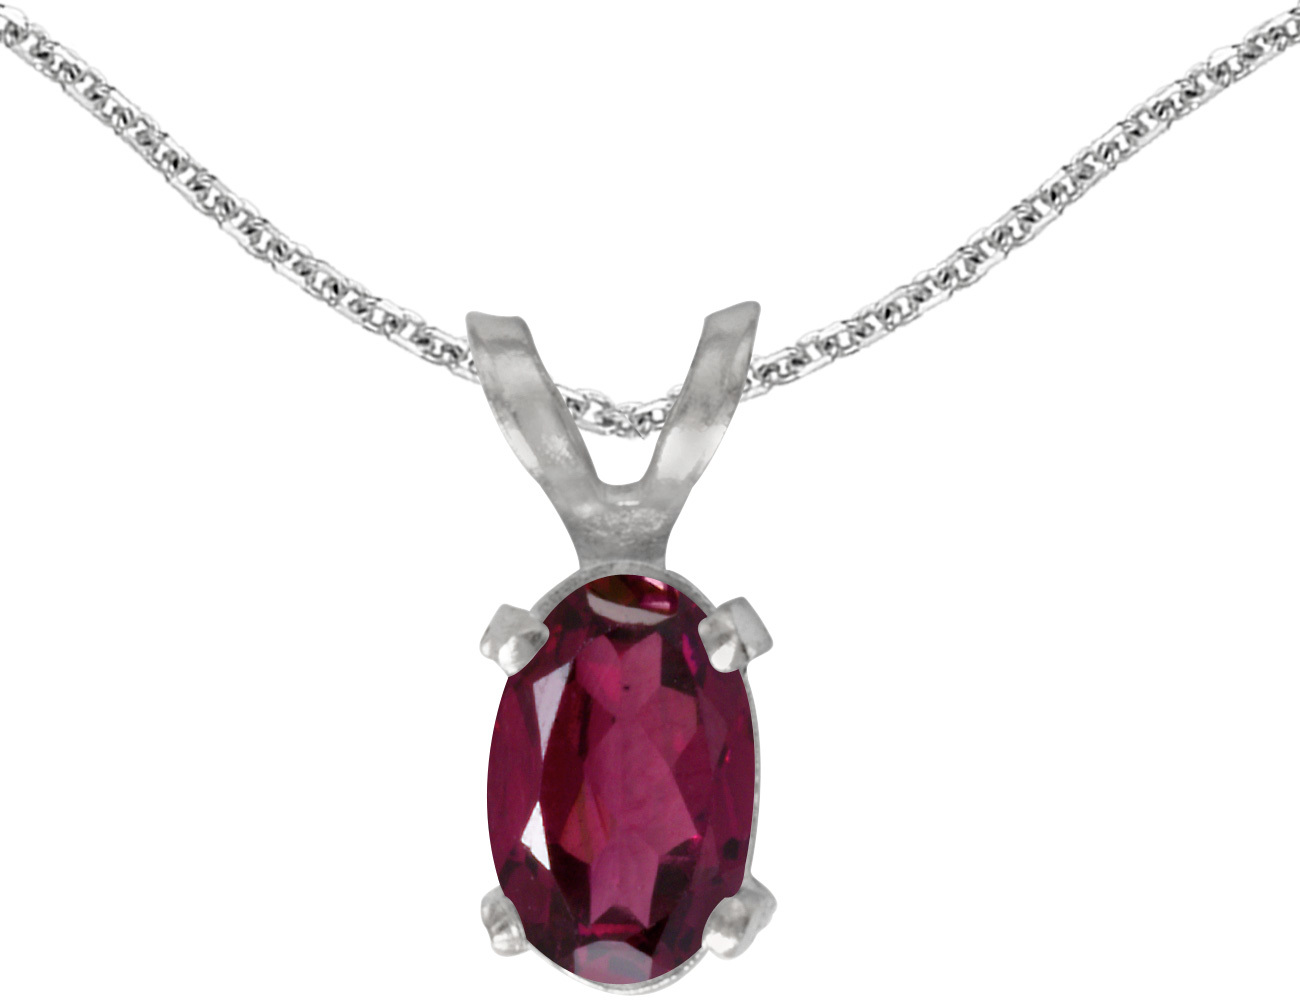 14k White Gold Oval Rhodolite Garnet Pendant (Chain NOT included)